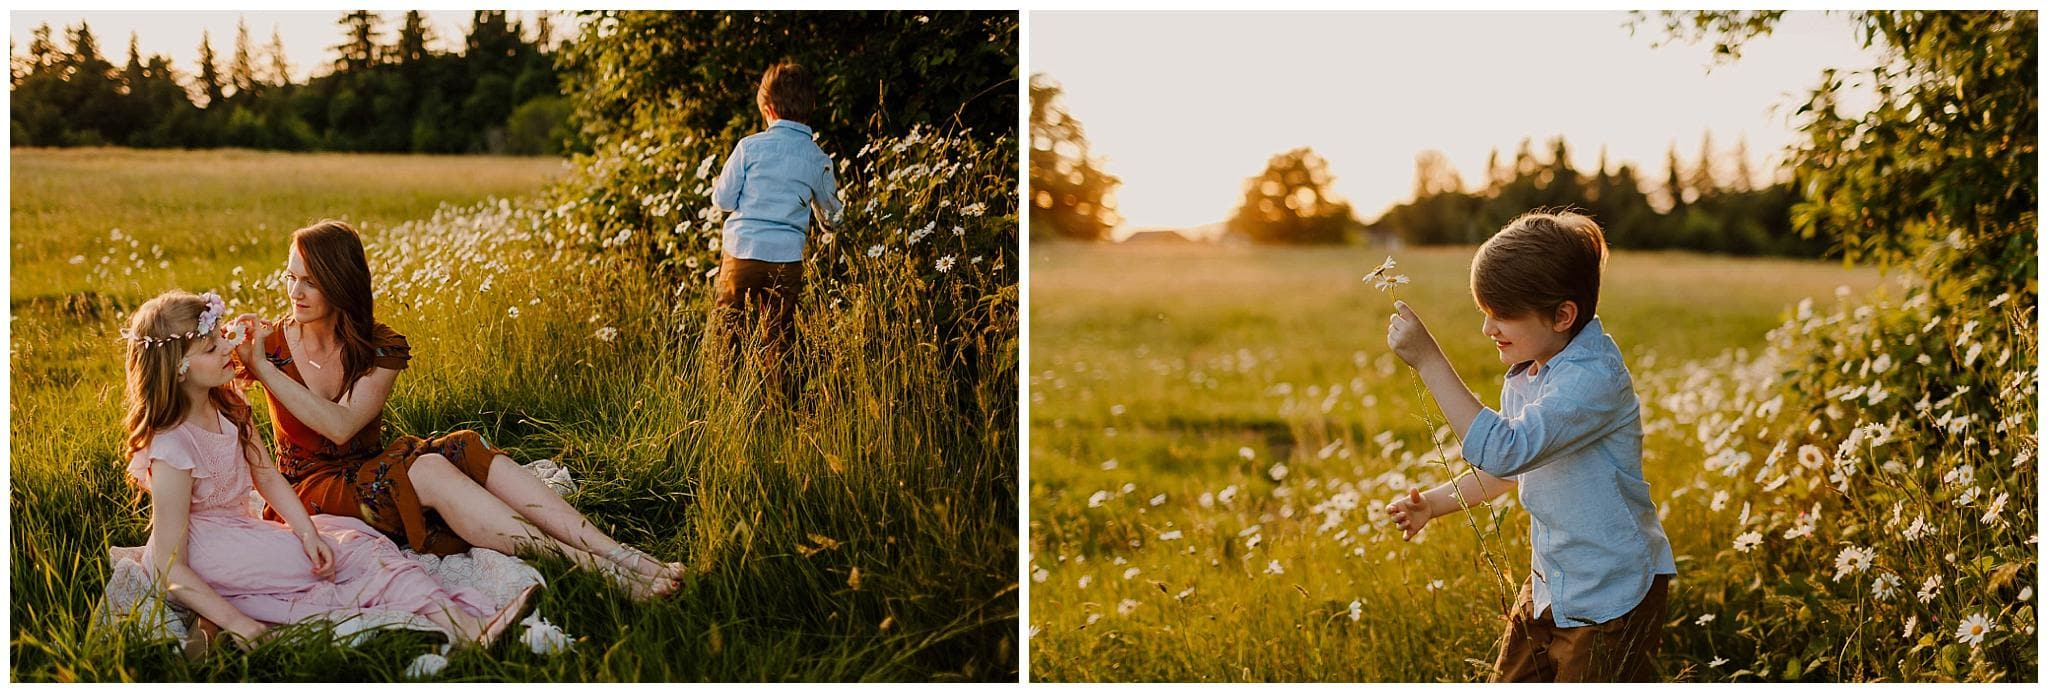 Little boy picking daisies and bringing it to his mom and sister